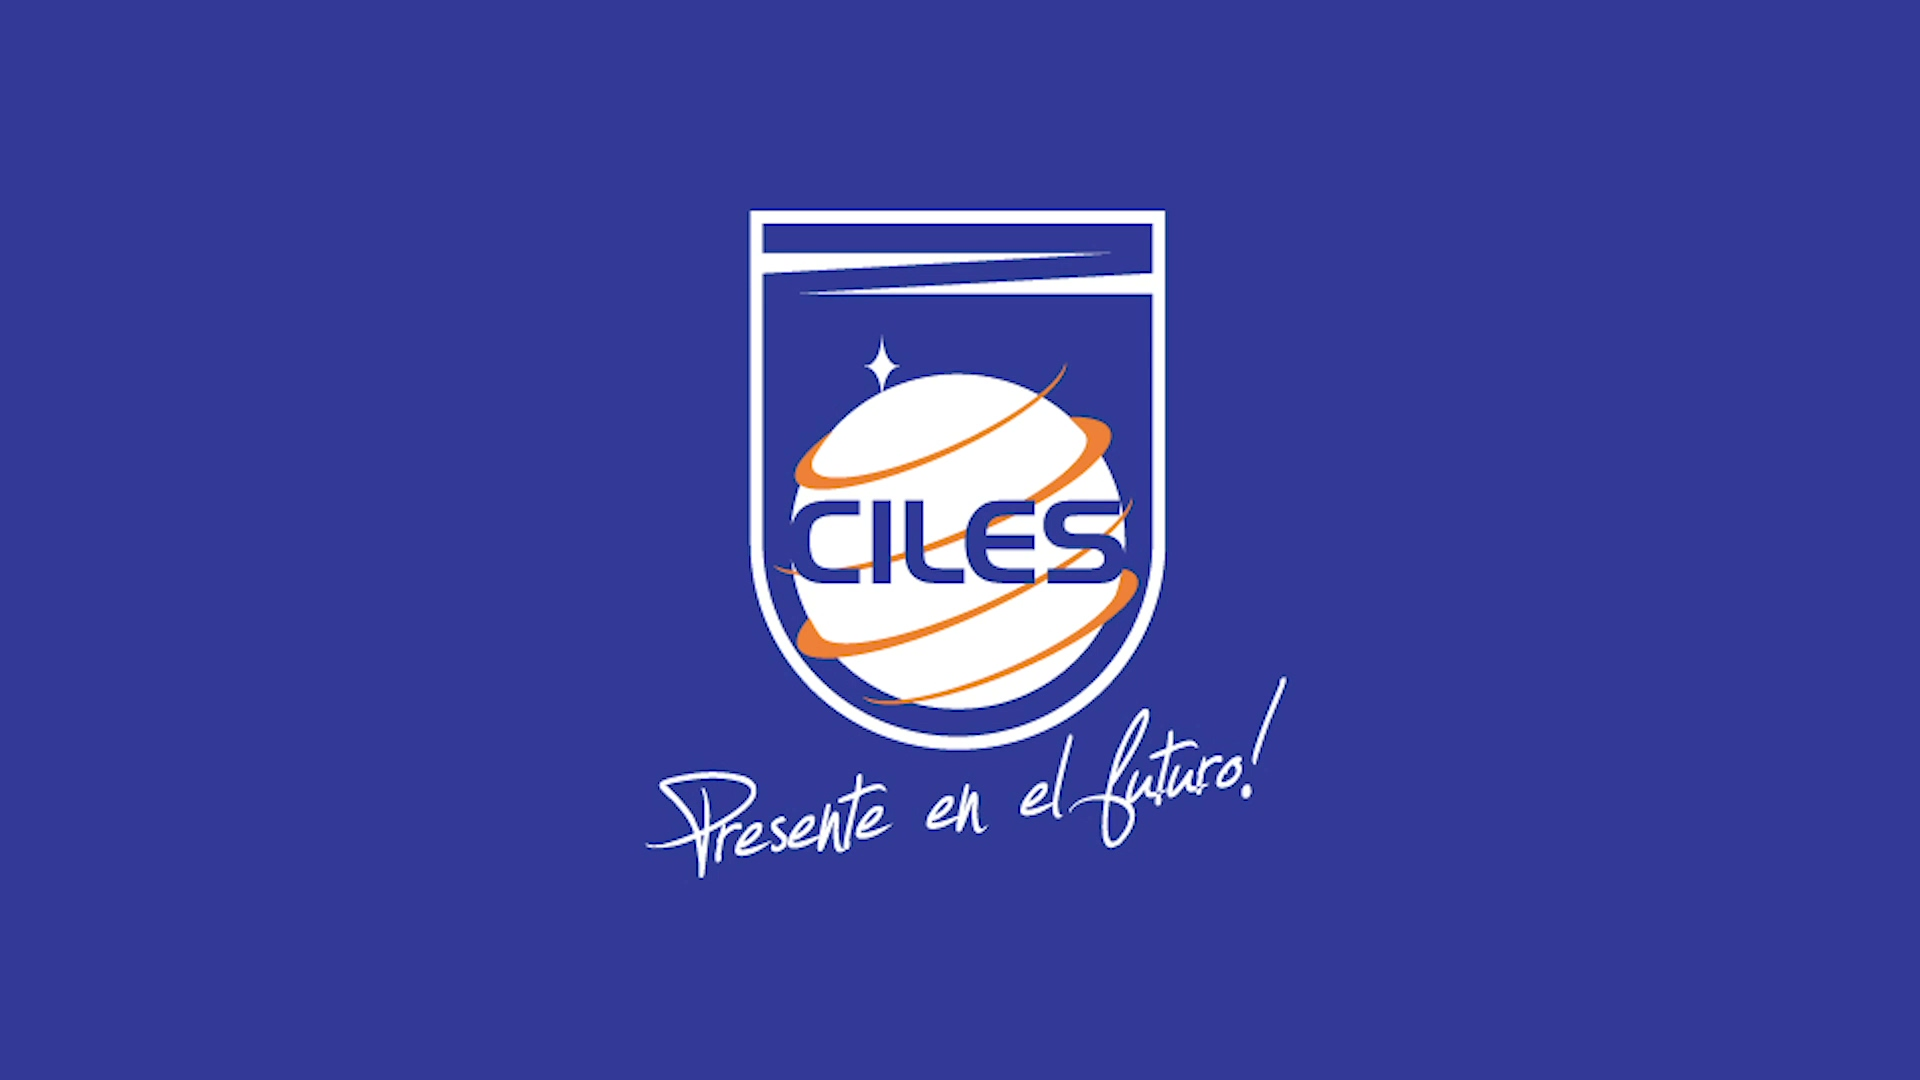 Ciles video manifiesto